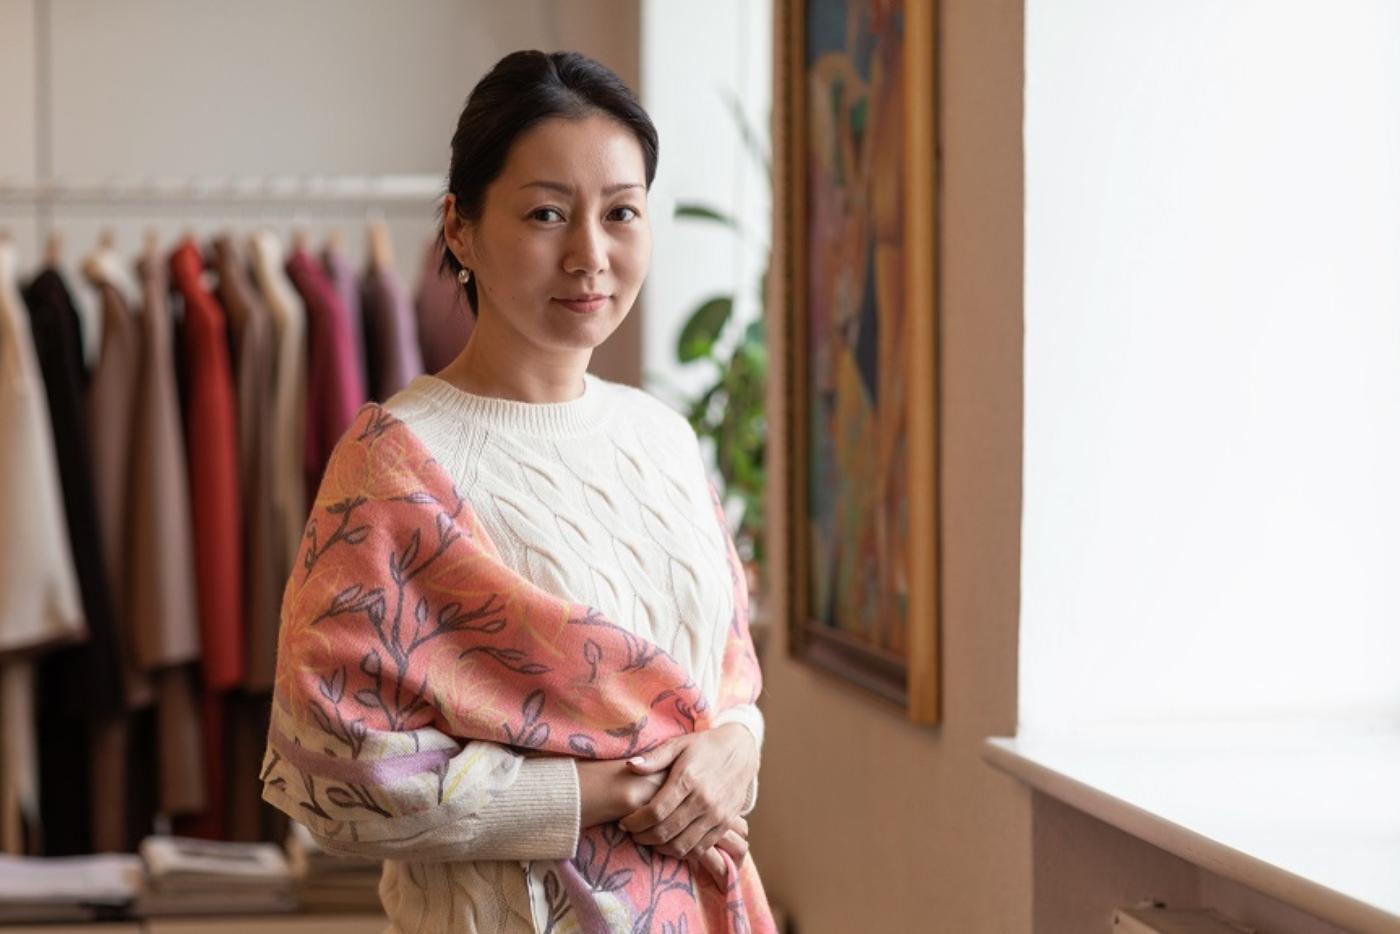 ARIUNAA BATCHULUUN: Gobi becomes the first Mongolian cashmere brand to launch online shop in the USA